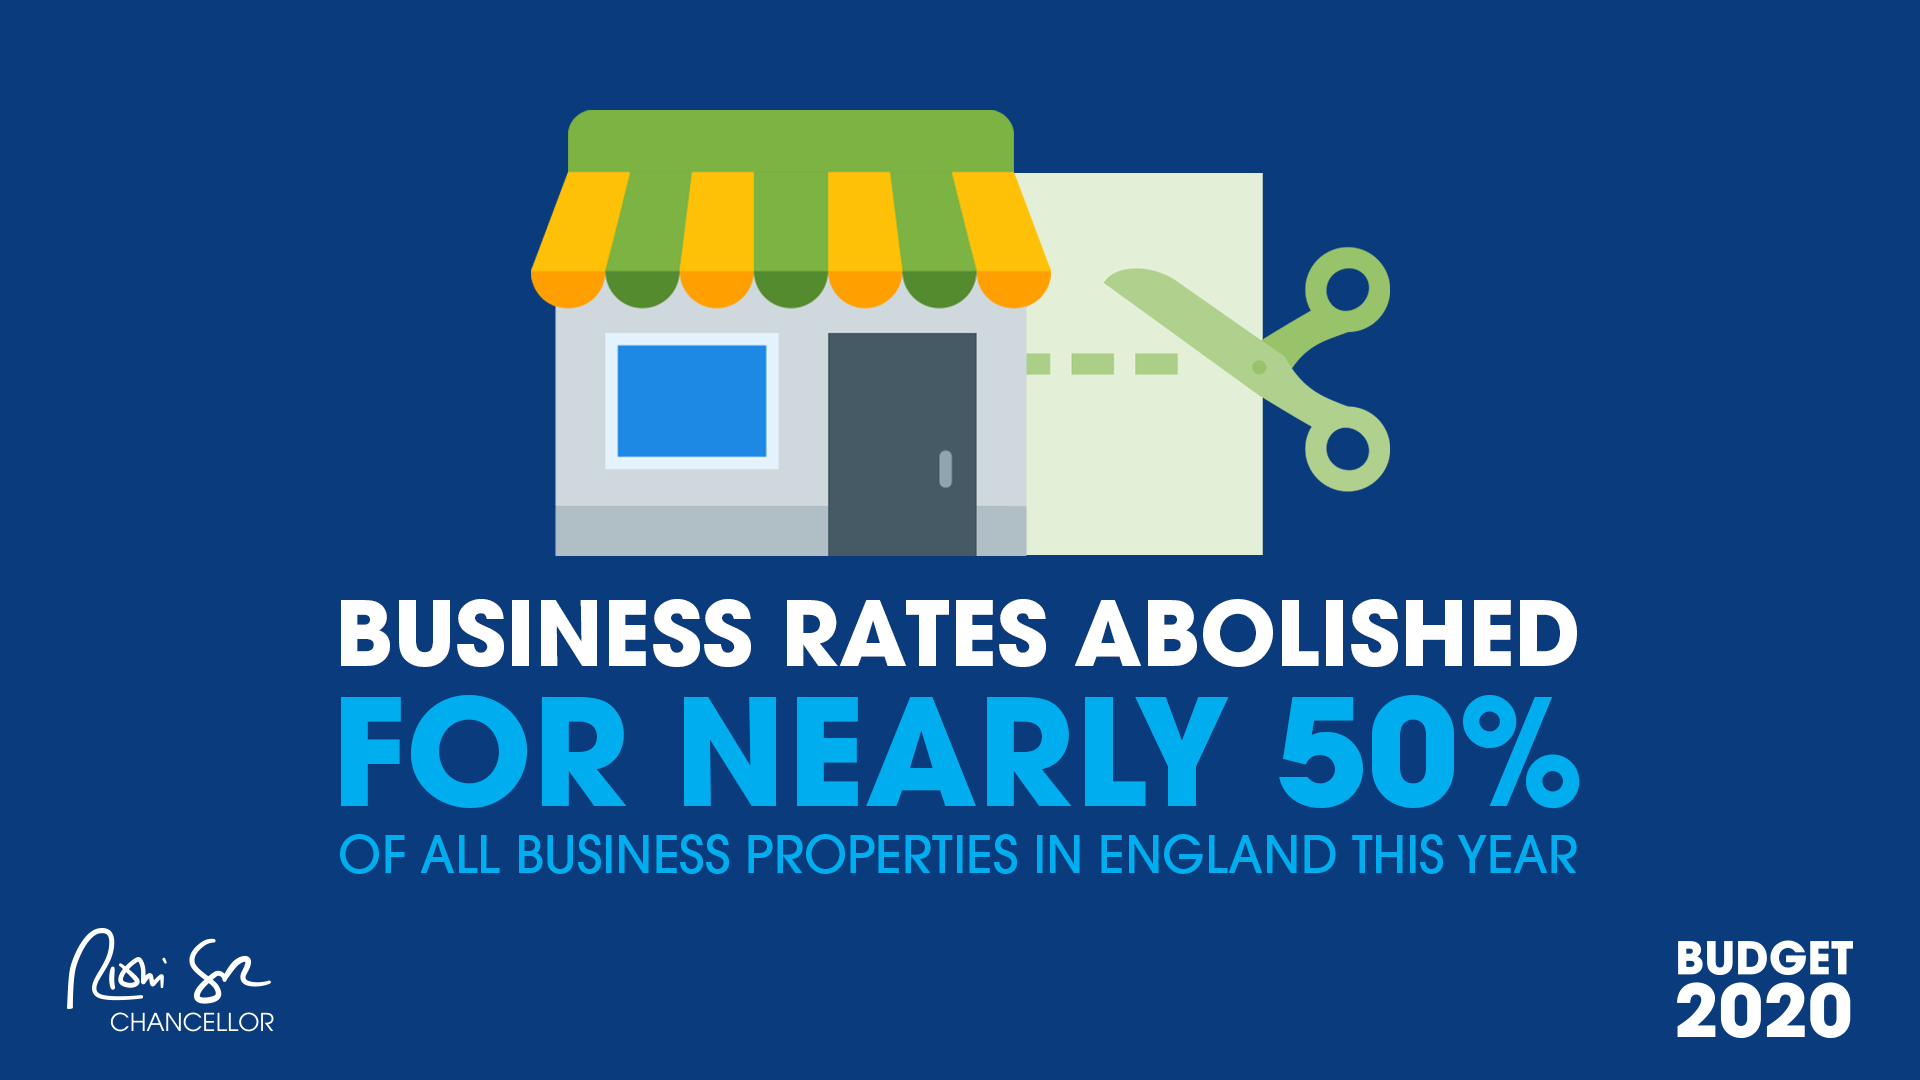 Business Rates abolished for nearly 50% of all business properties in England this year.